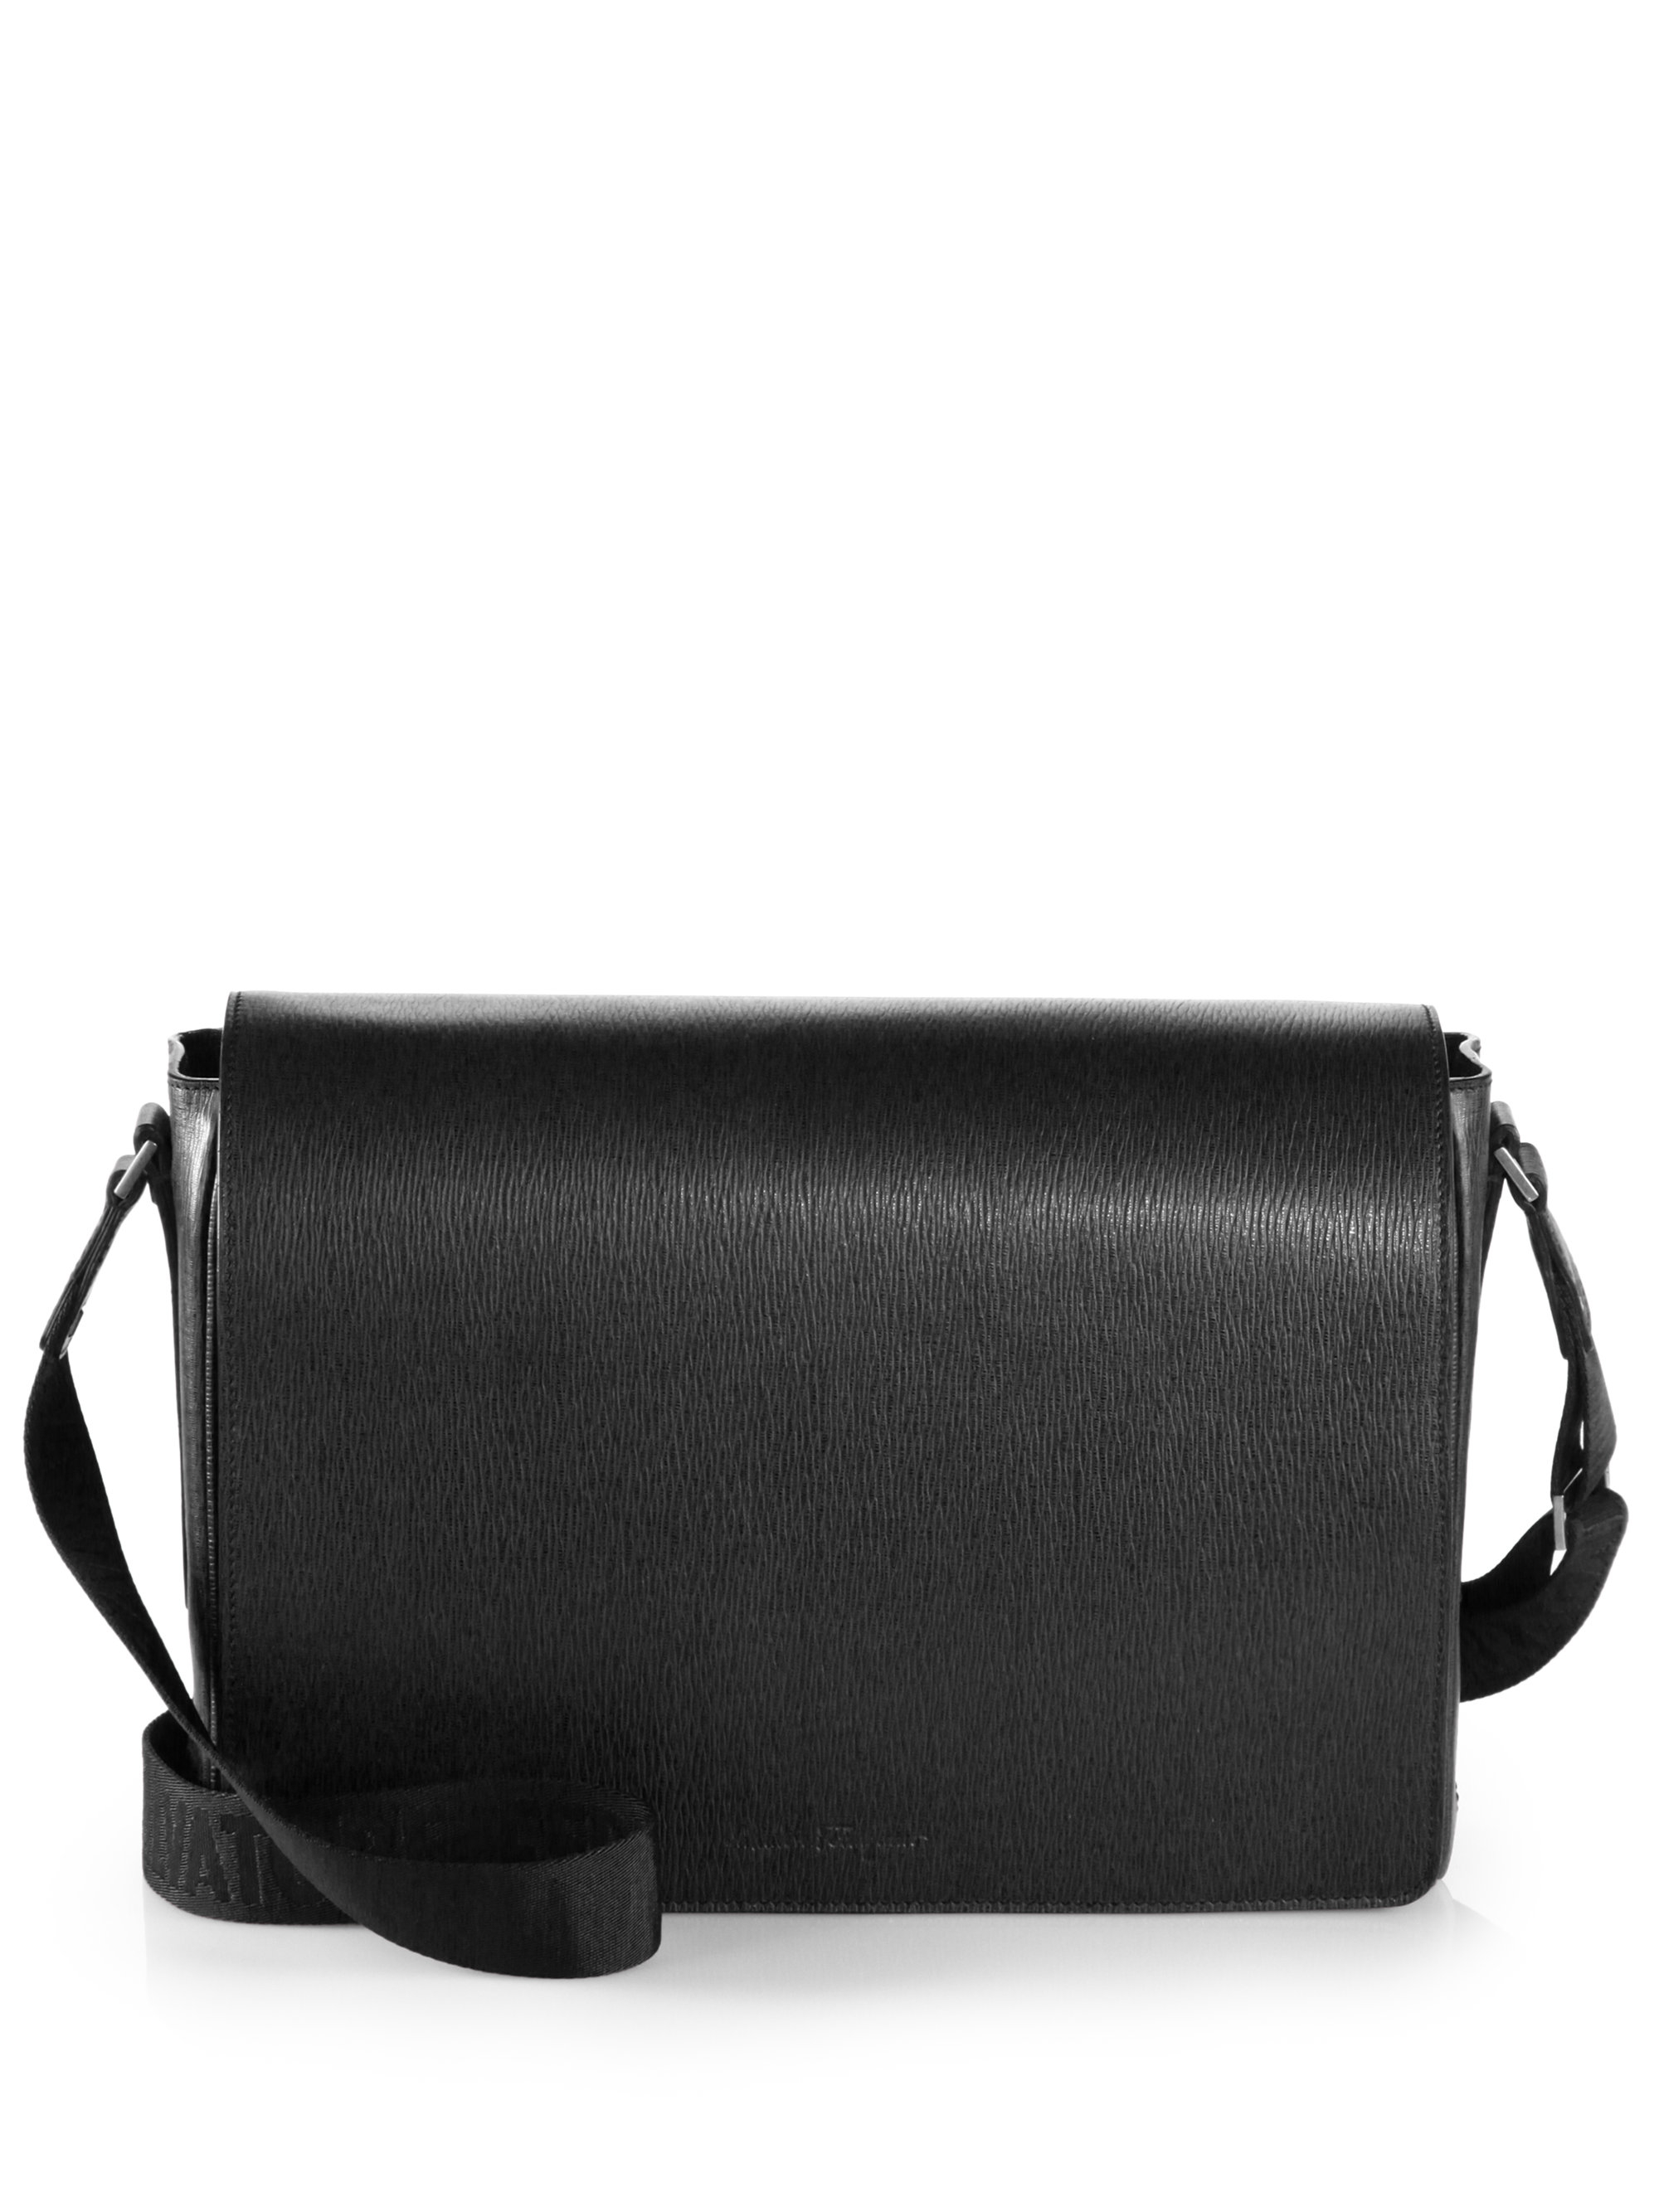 Ferragamo Leather Messenger Bag in Black for Men | Lyst